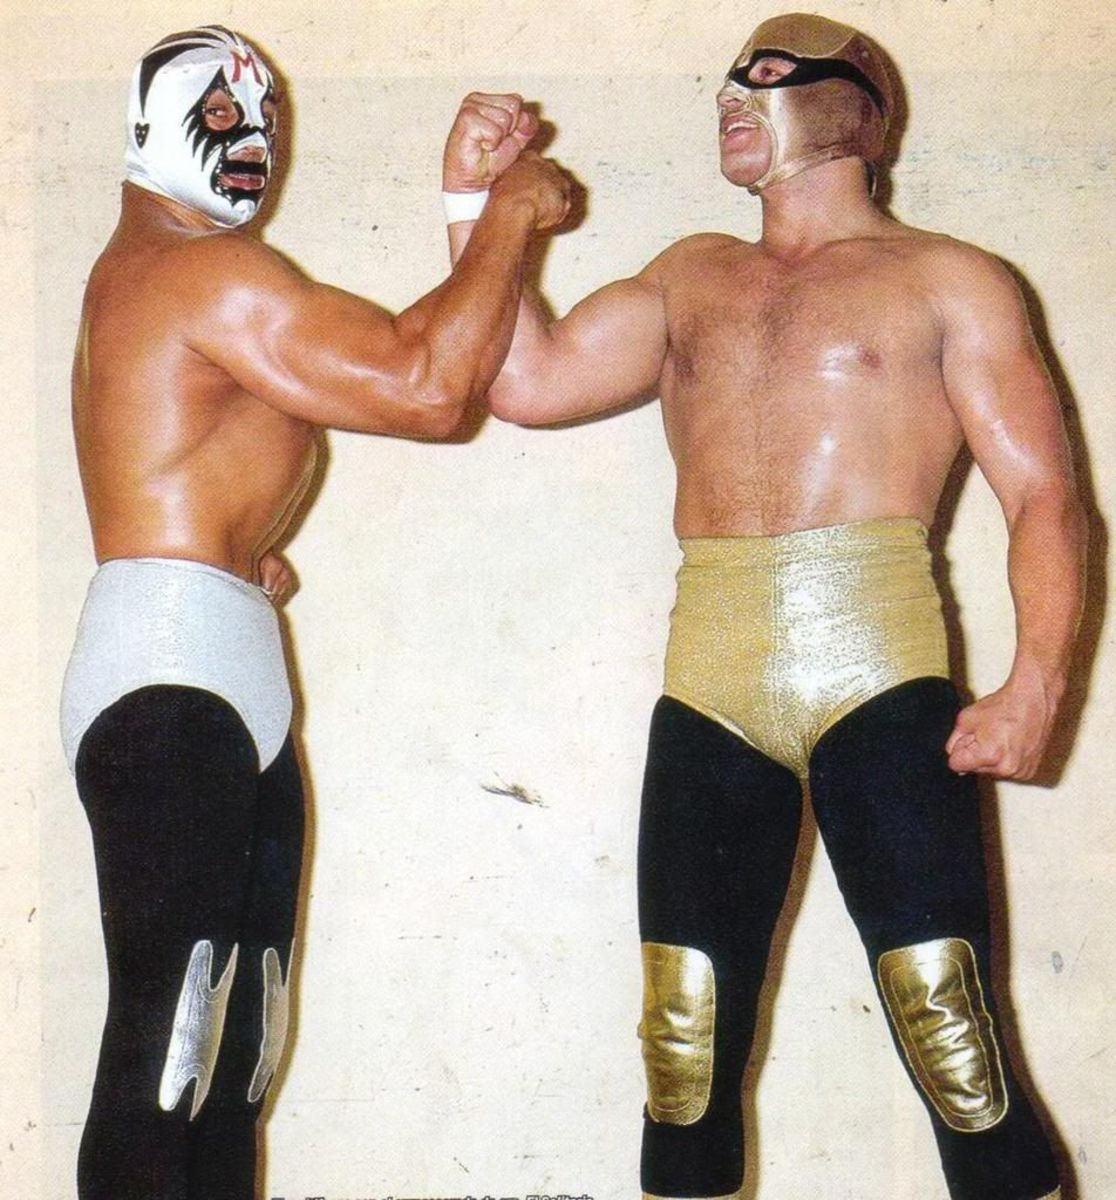 The legendary El Solitario with the legendary Mil Mascaras